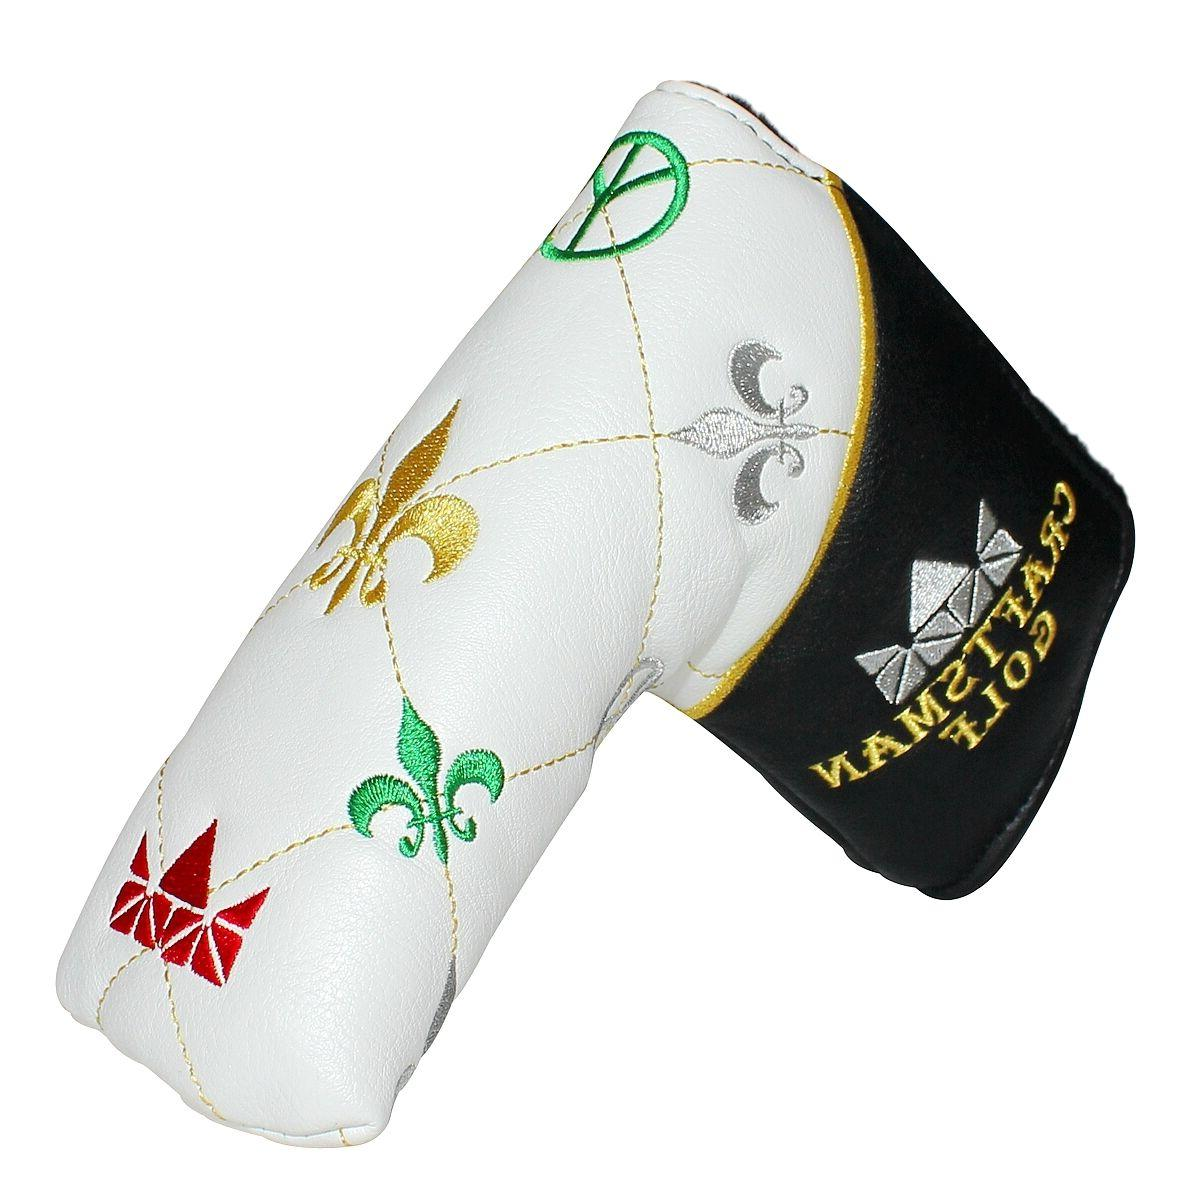 USA Magnetic Headcover Cameron Cleveland